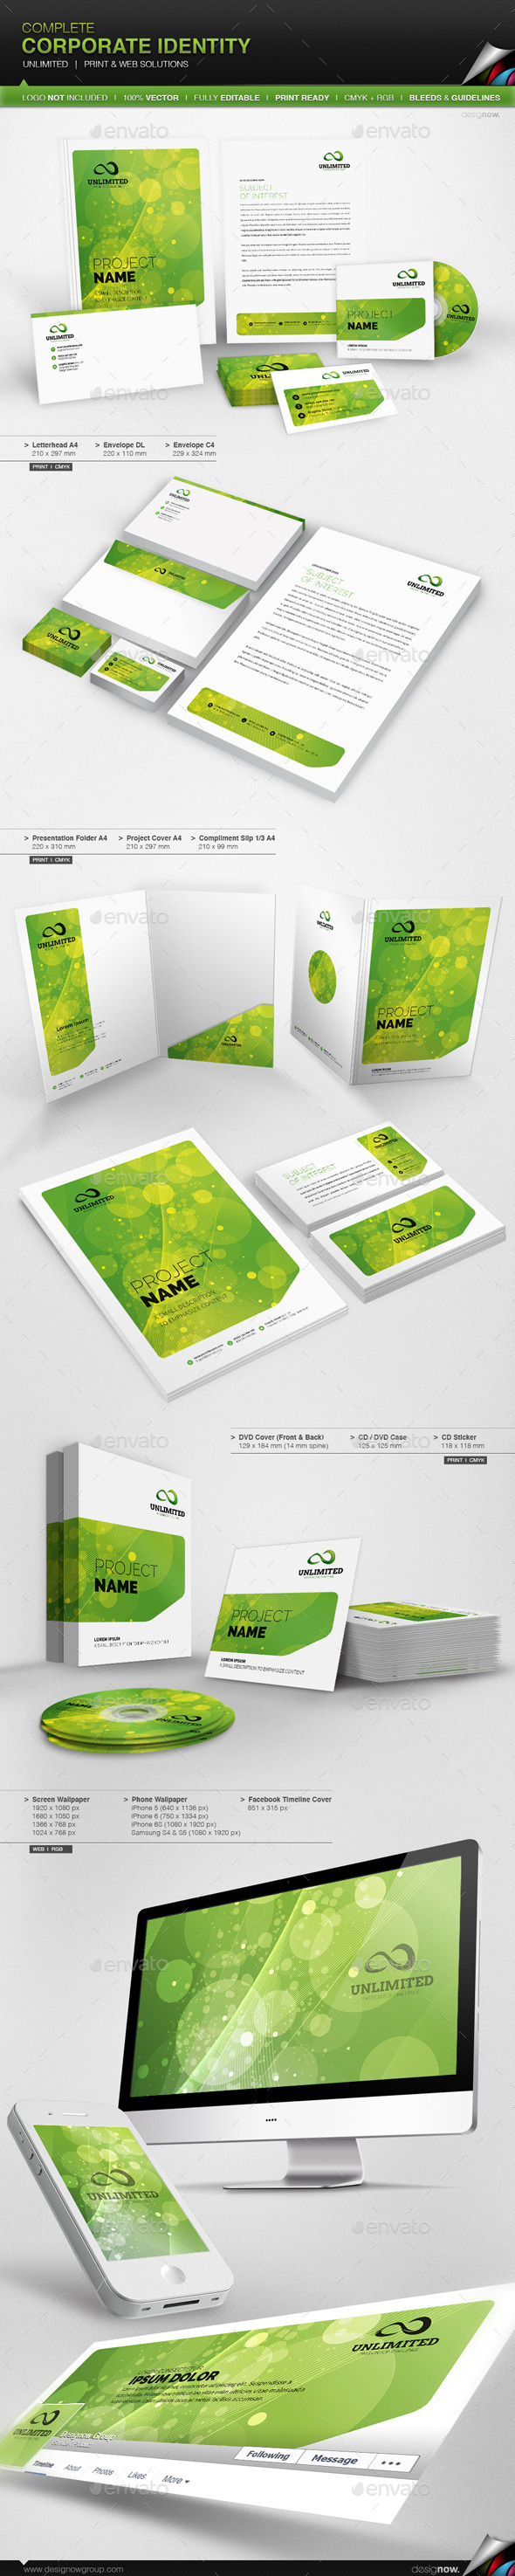 Corporate Identity - Unlimited - Stationery Print Templates